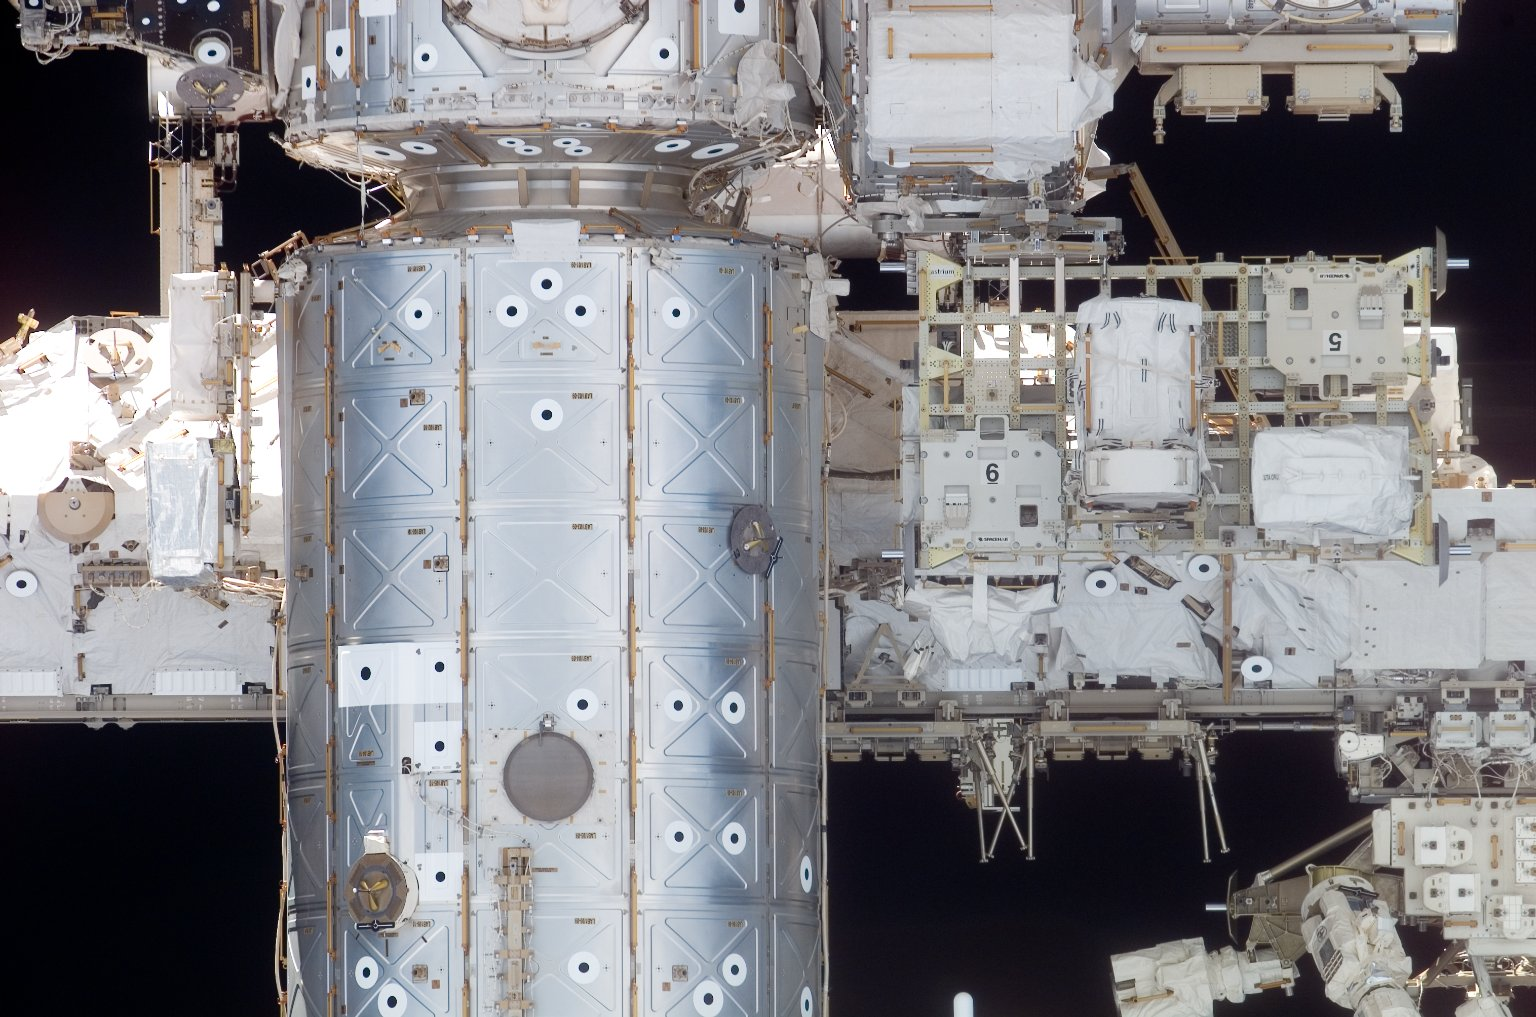 S0 Truss,U.S. Laboratory,and Node 1 on the ISS during STS-117 Mission